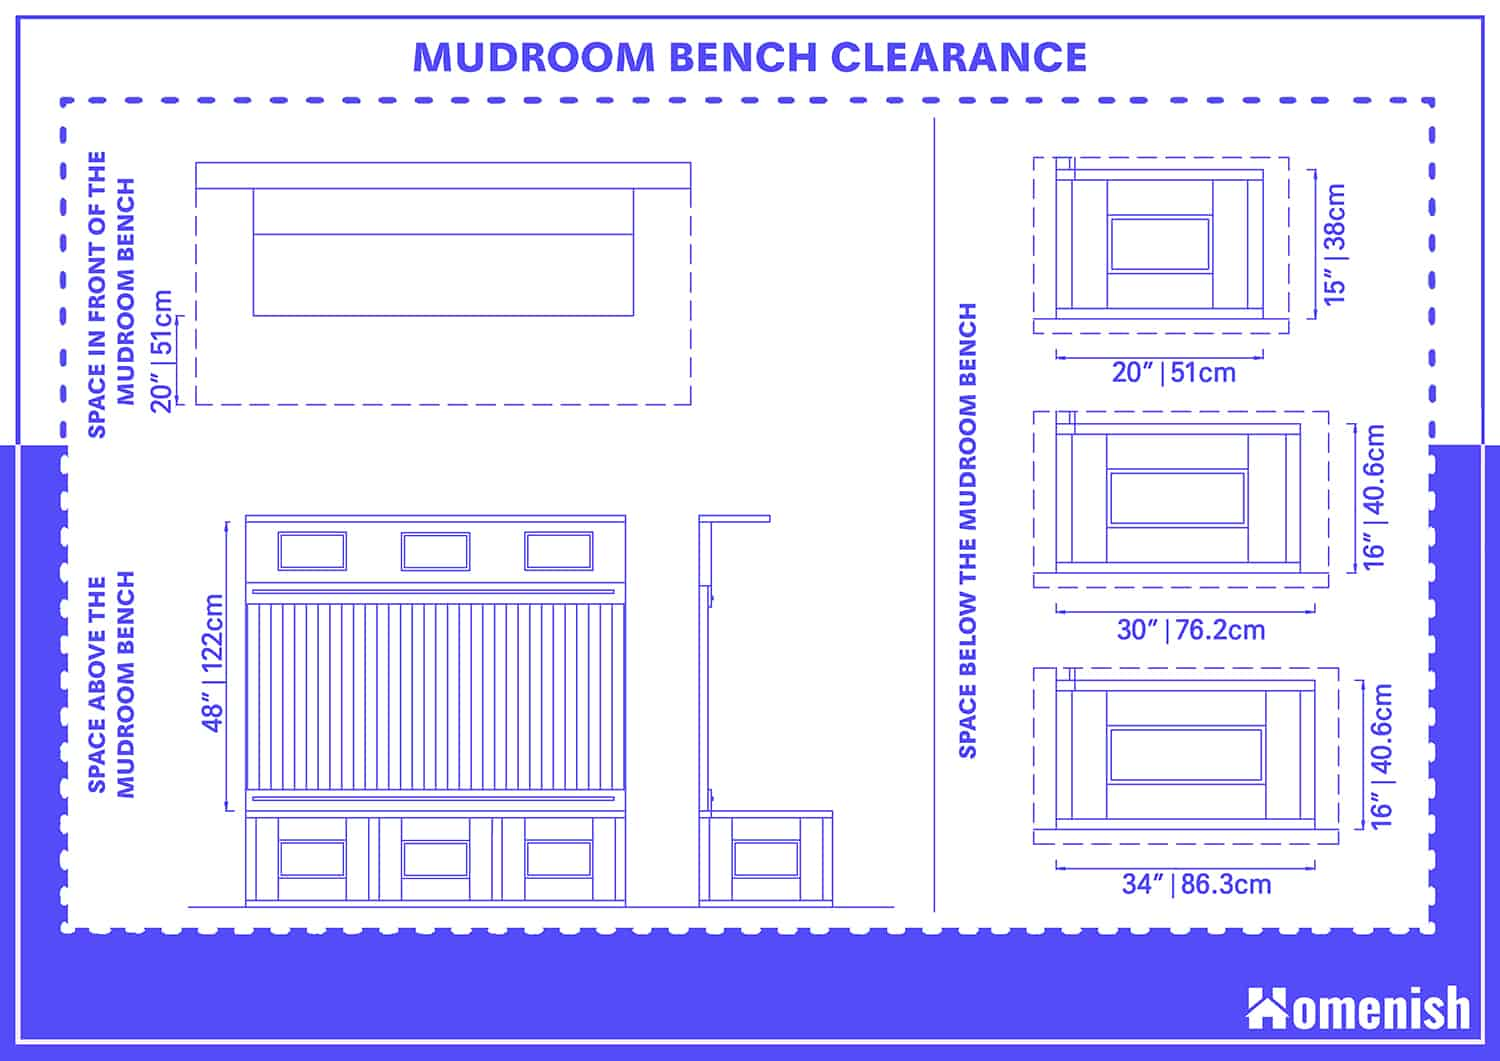 Mudroom Bench Clearance